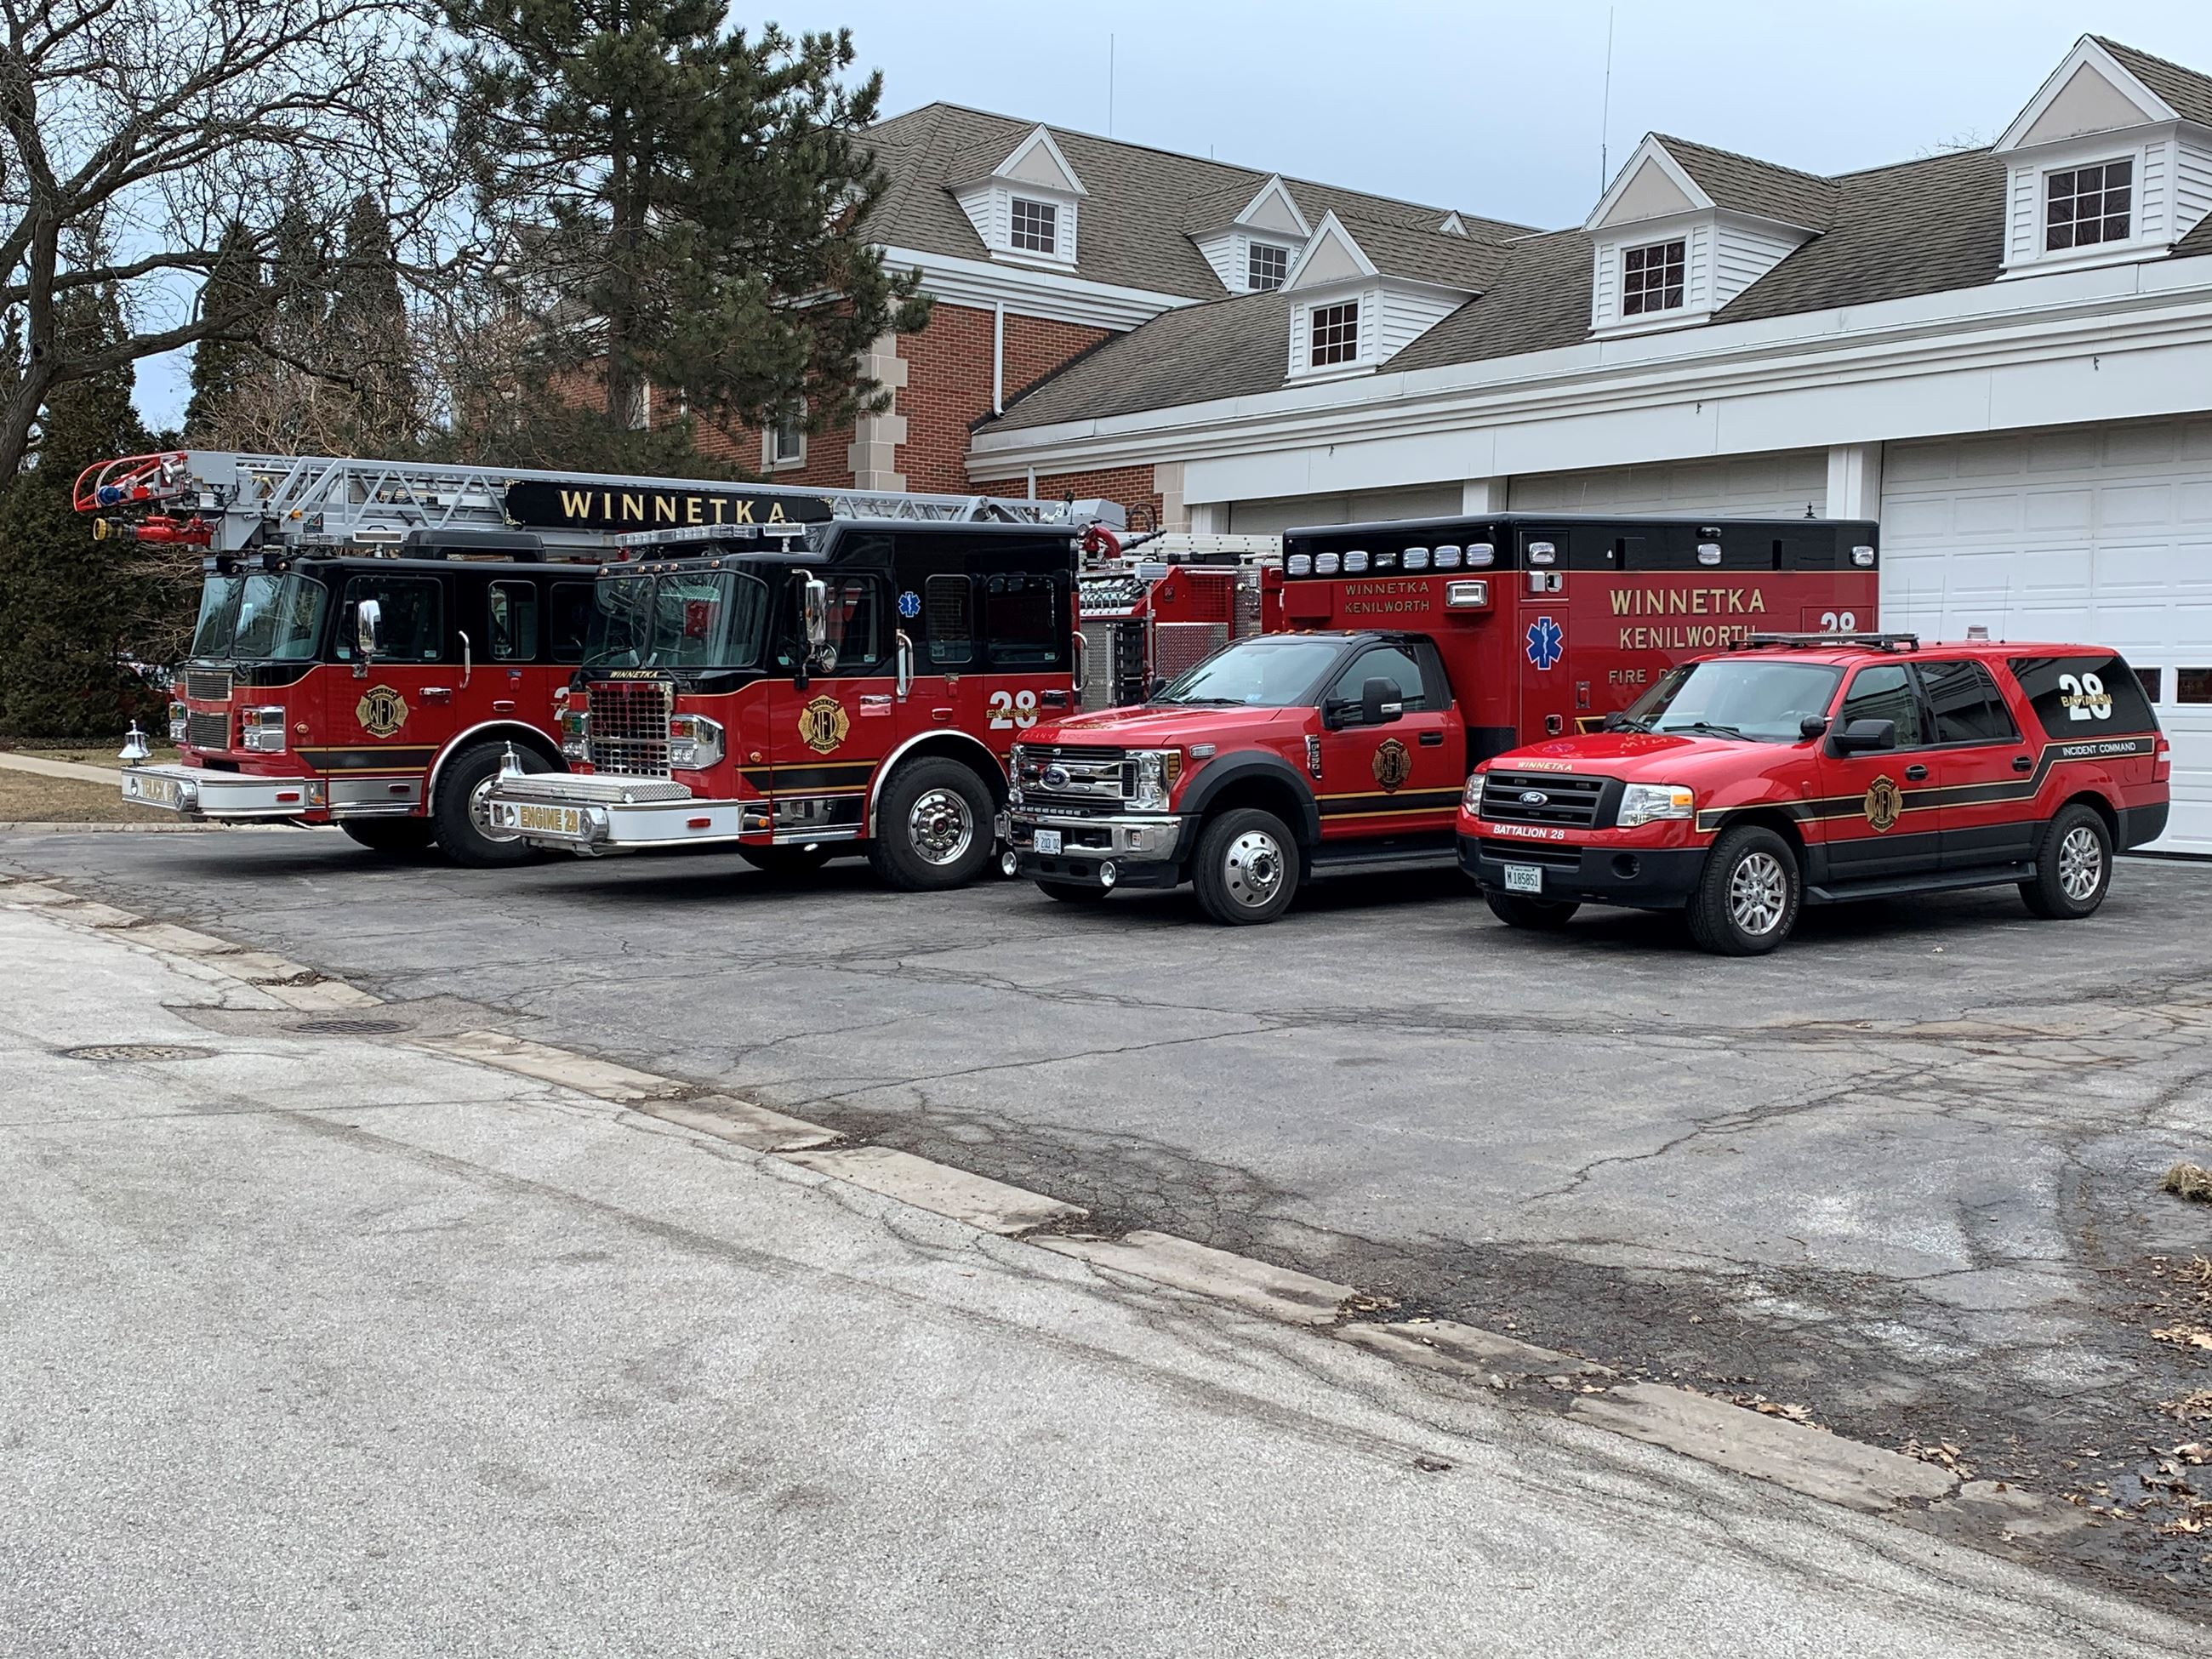 Fire Department Vehicles Parked Outside Station